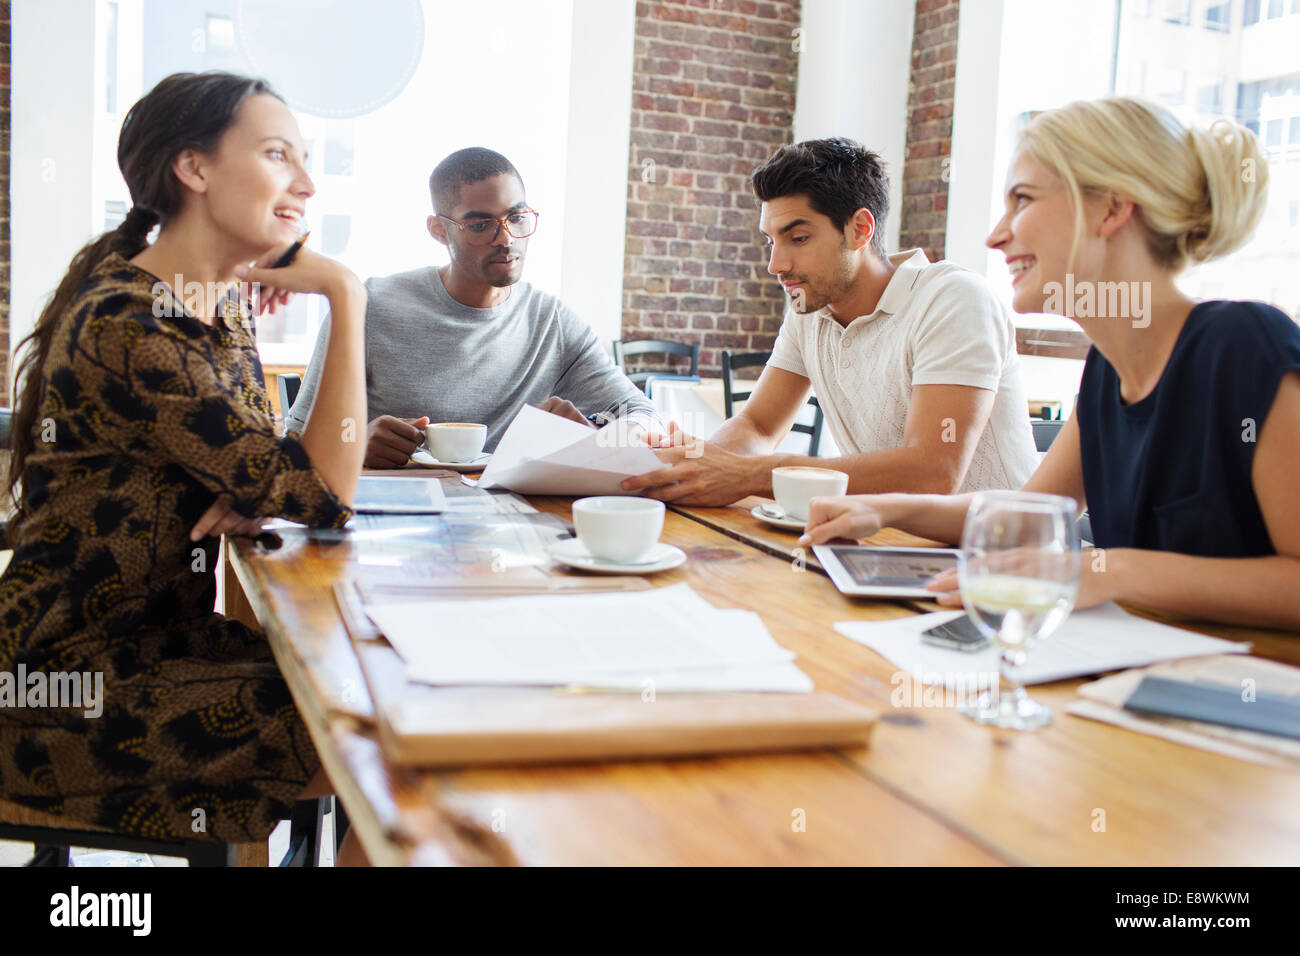 Business people talking at meeting in cafe - Stock Image